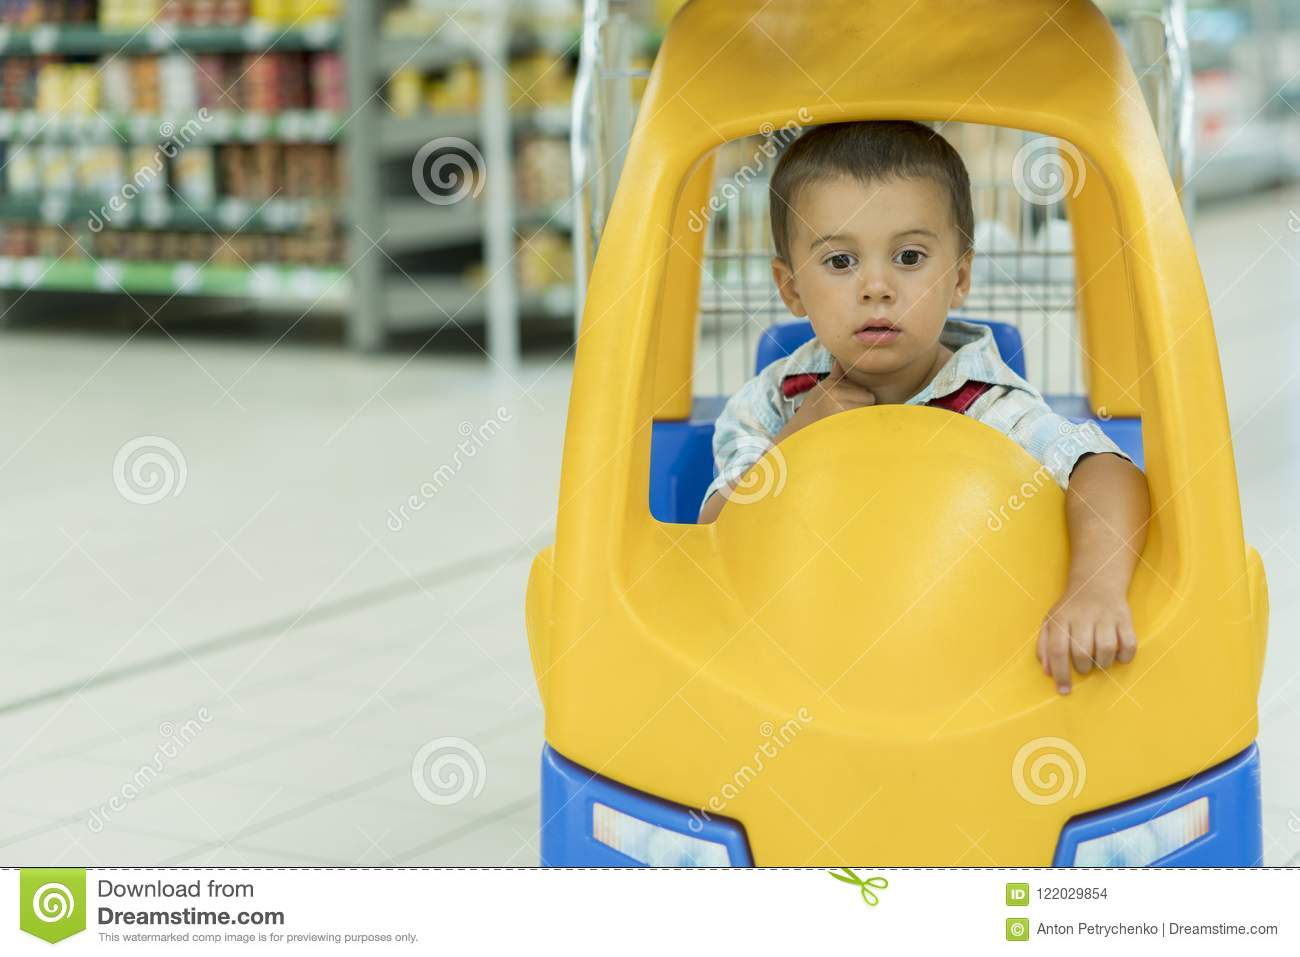 e3c072d02bf5 Cute Little 2 Year Old Baby Boy Child In The Little Toy-car Trolley ...